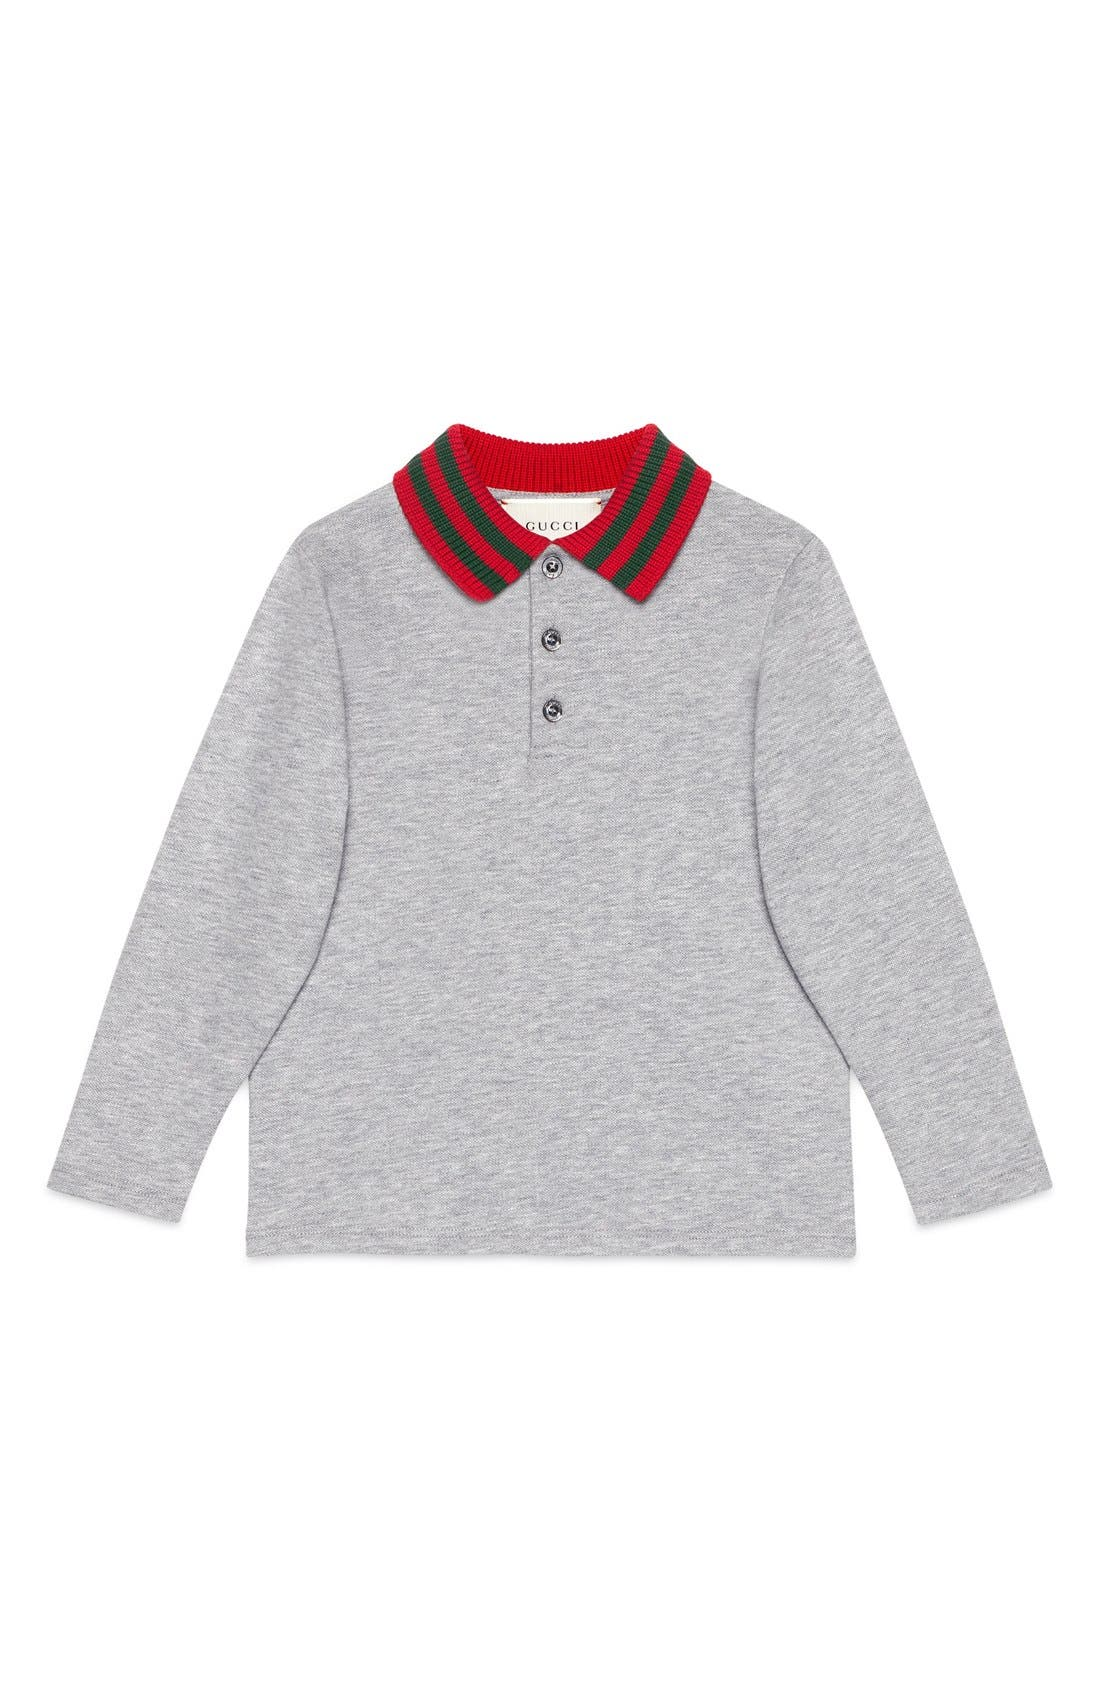 GUCCI Knit Collar Long Sleeve Polo